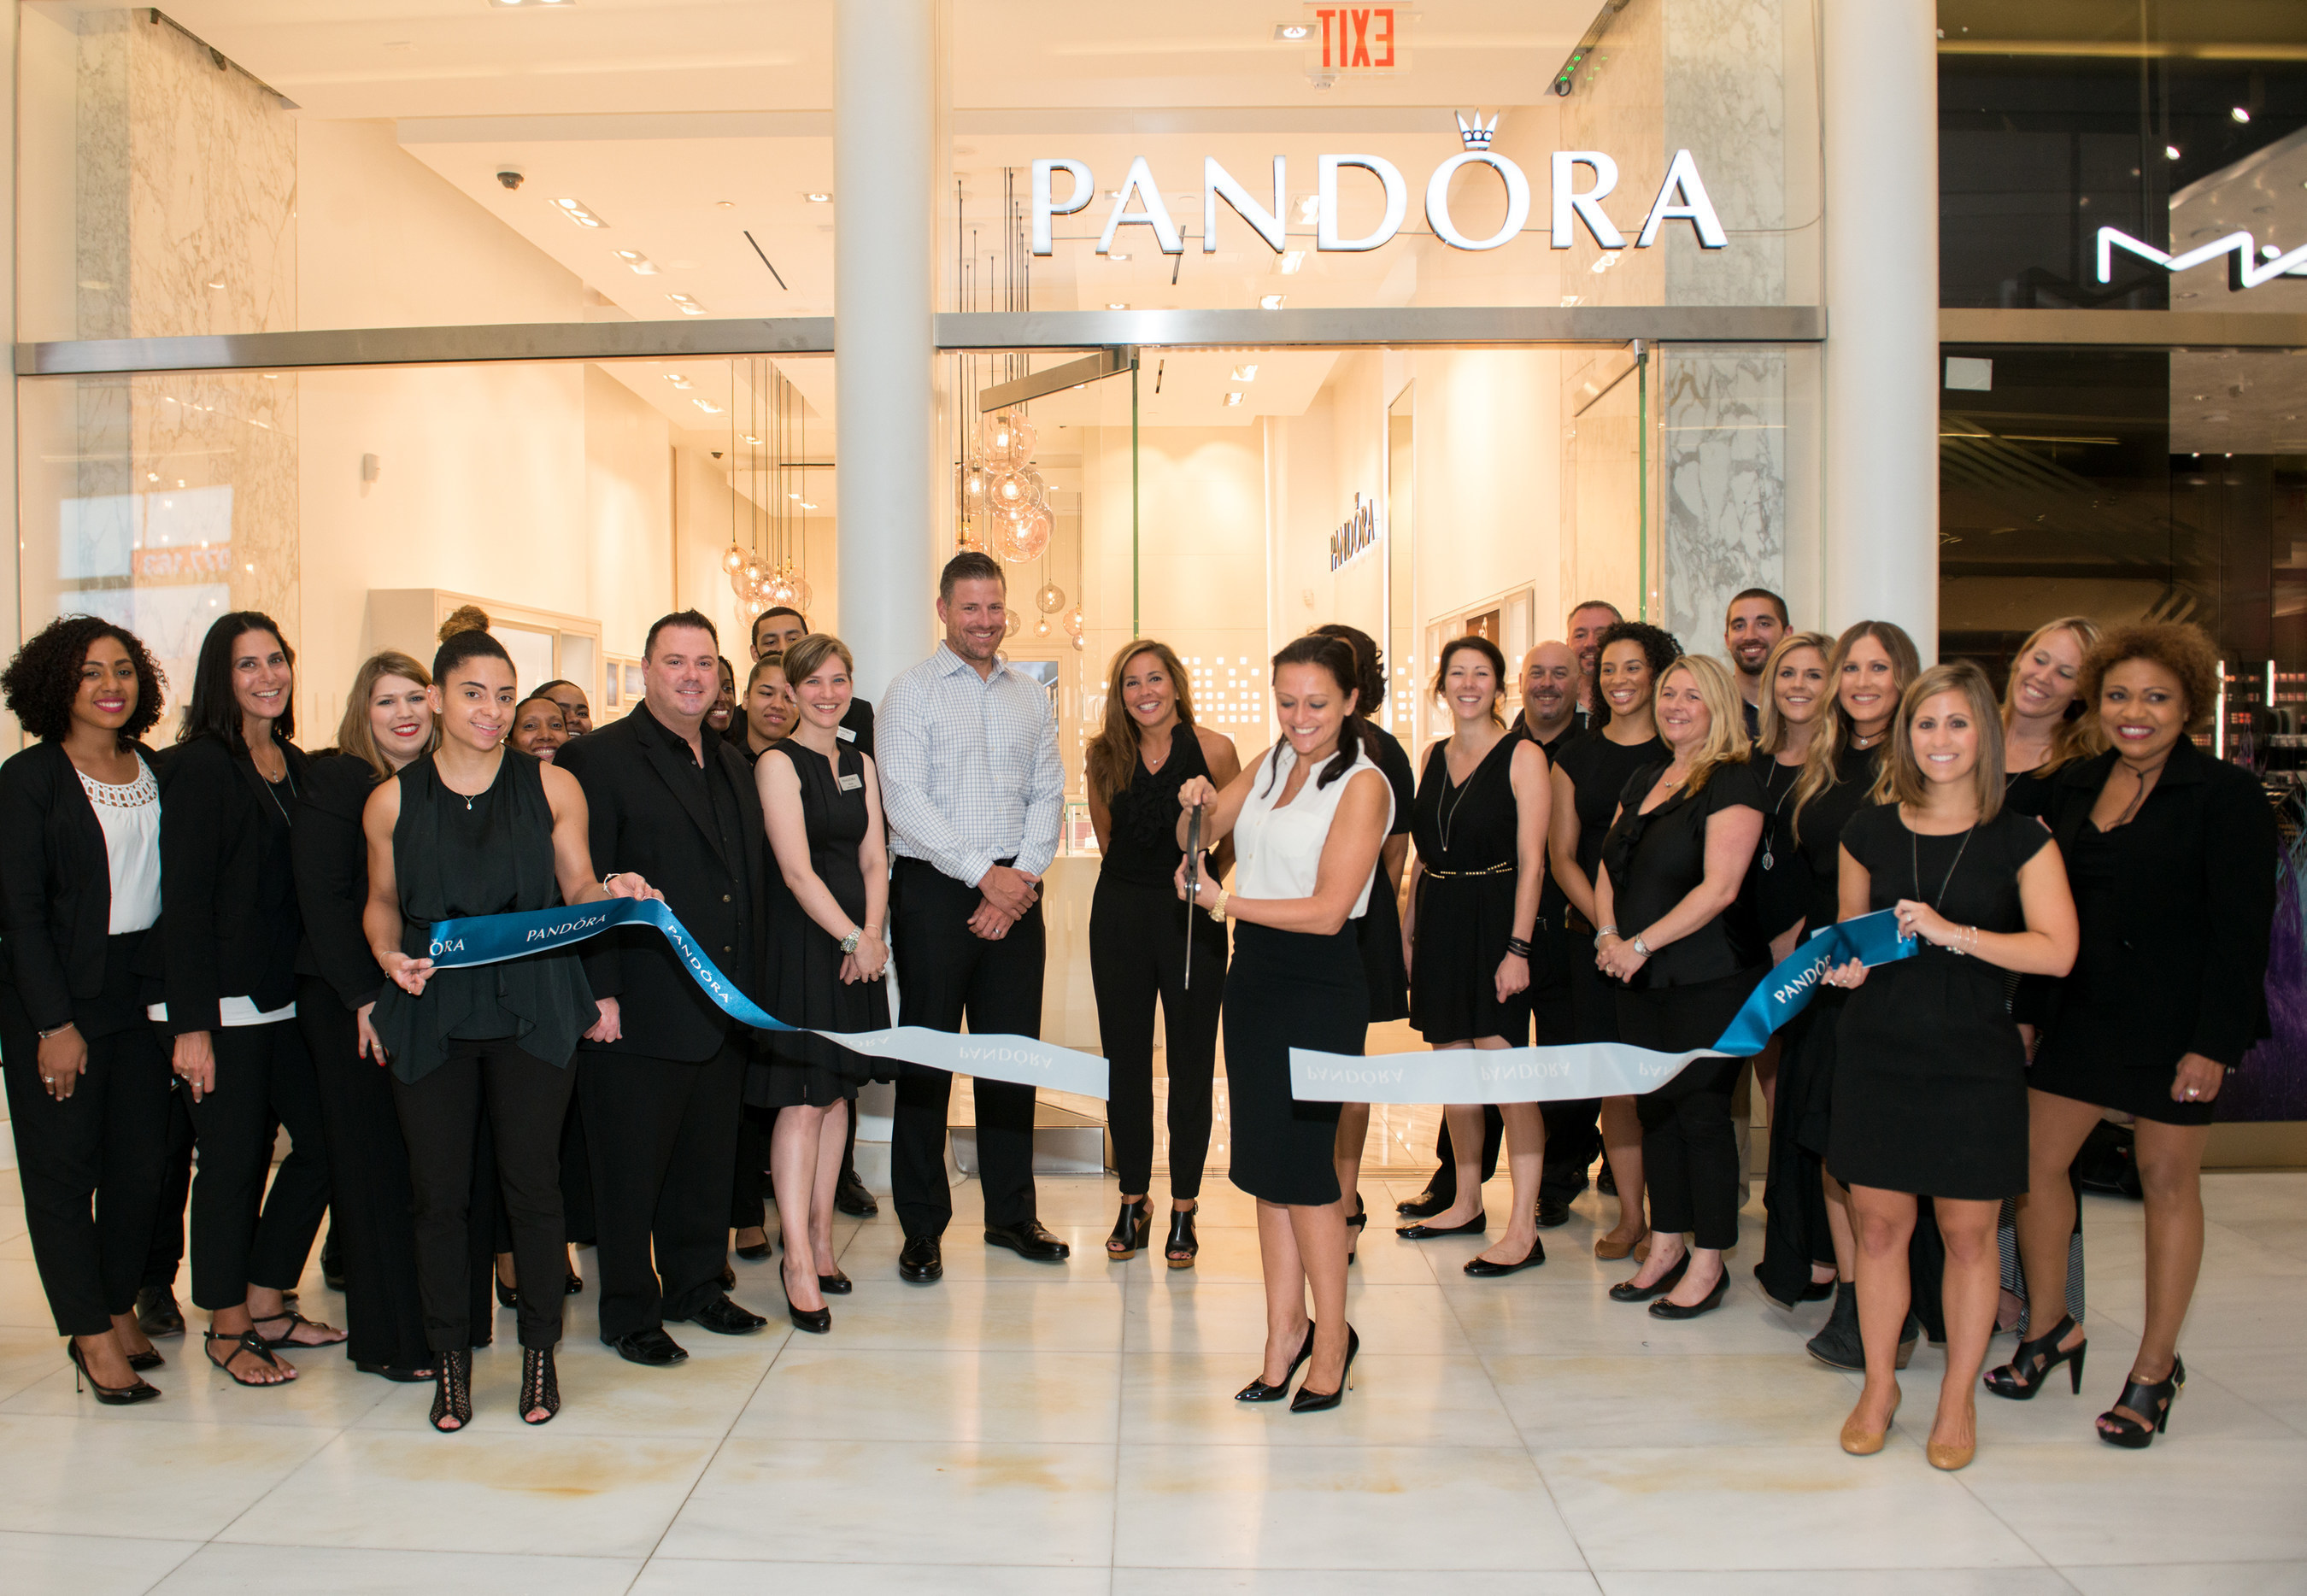 ea915357a PANDORA Jewelry Opens New Store at Westfield World Trade Center Laurie  McDonald, General Manager, PANDORA Jewelry, U.S. Cuts Ribbon in Honor of  PANDORA